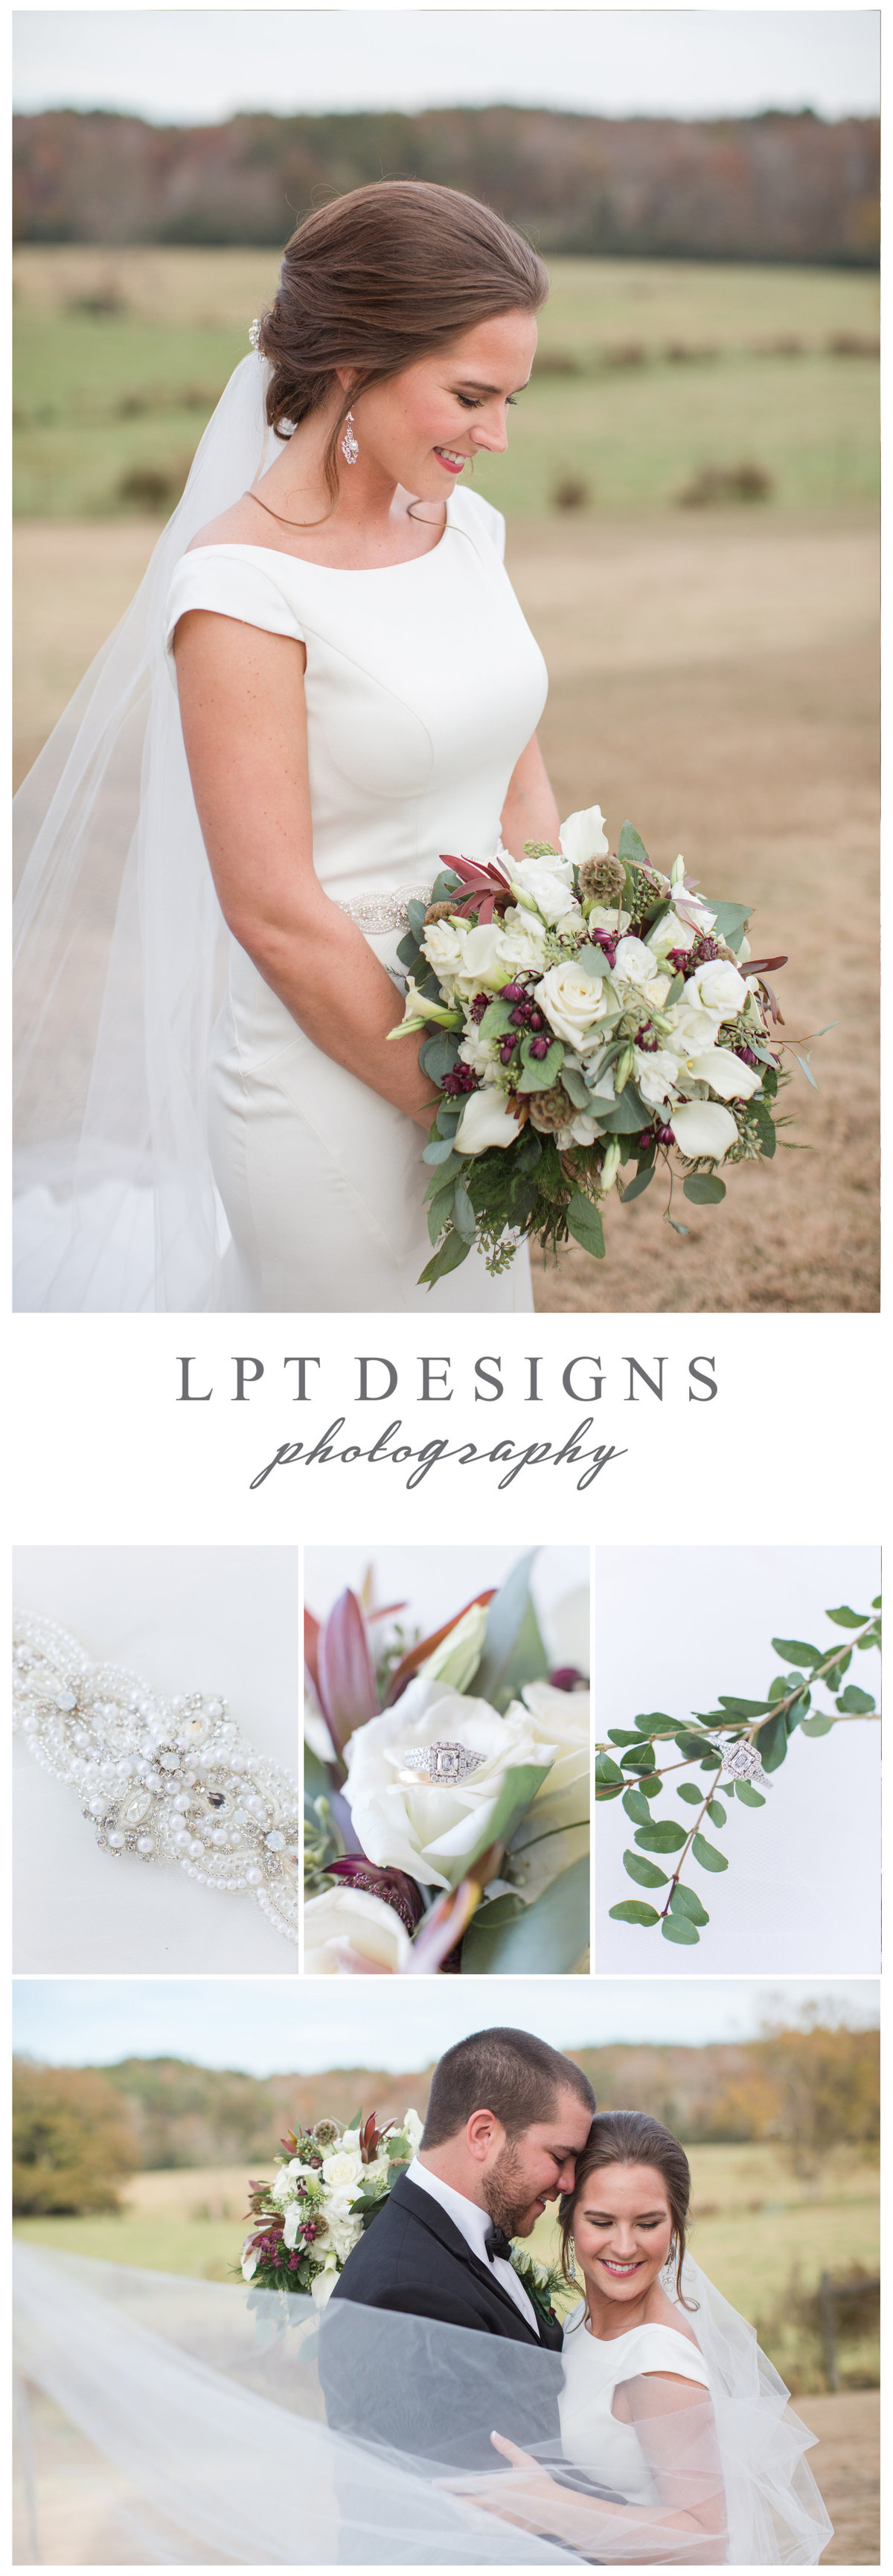 lpt_designs_photography_lydia_thrift_gadsden_alabama_fine_art_wedding_photographer_ka_1